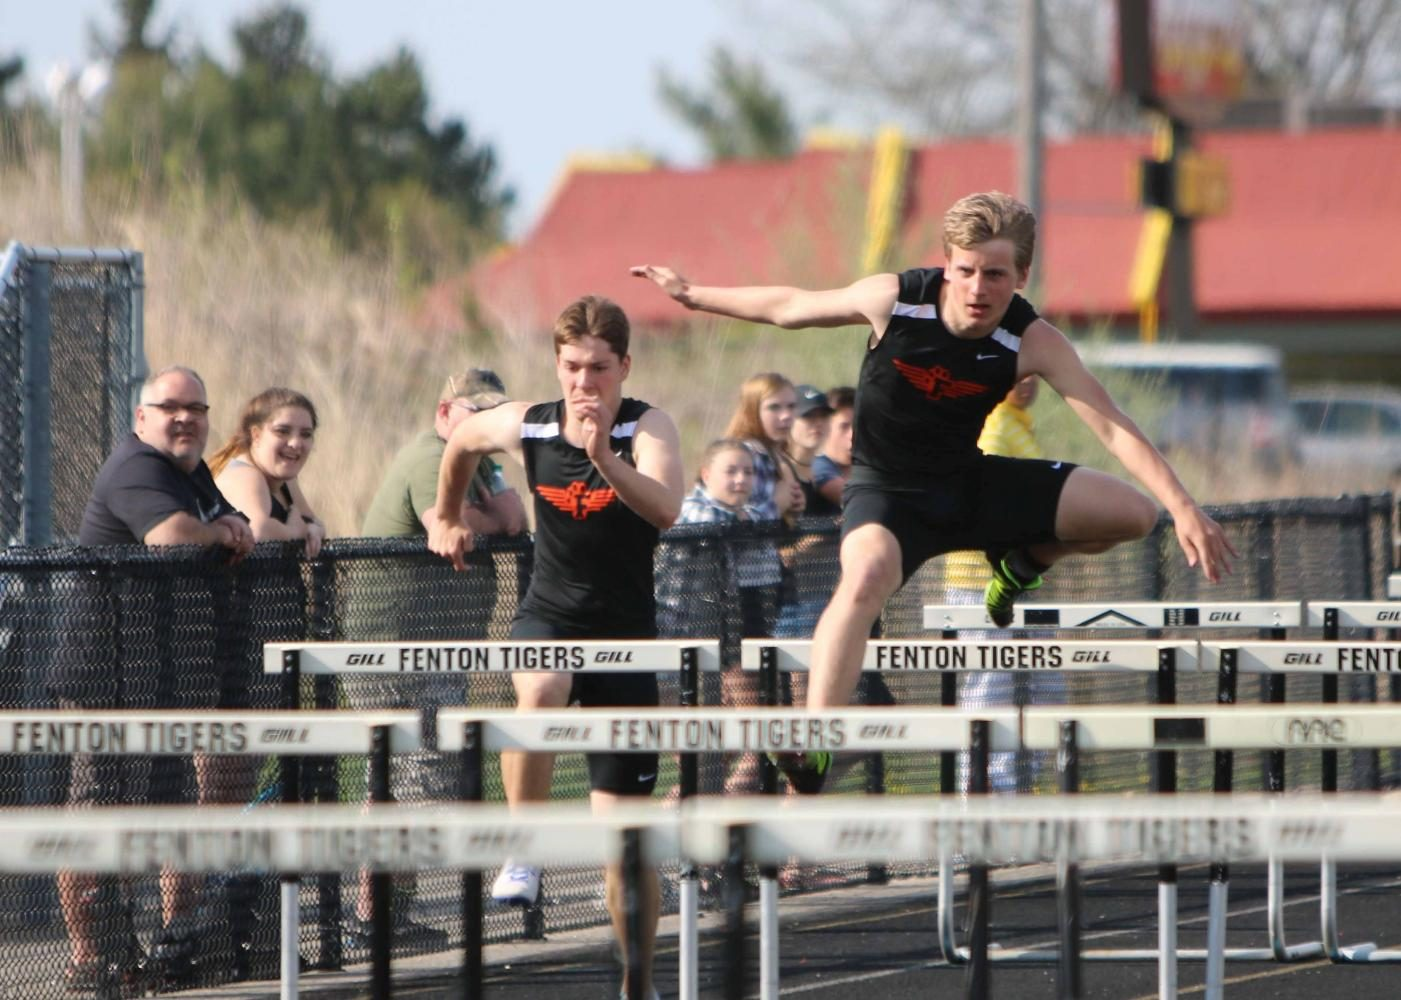 Running the hurdles, sophomore Nick Accopiate pushes himself to do his best in the event.